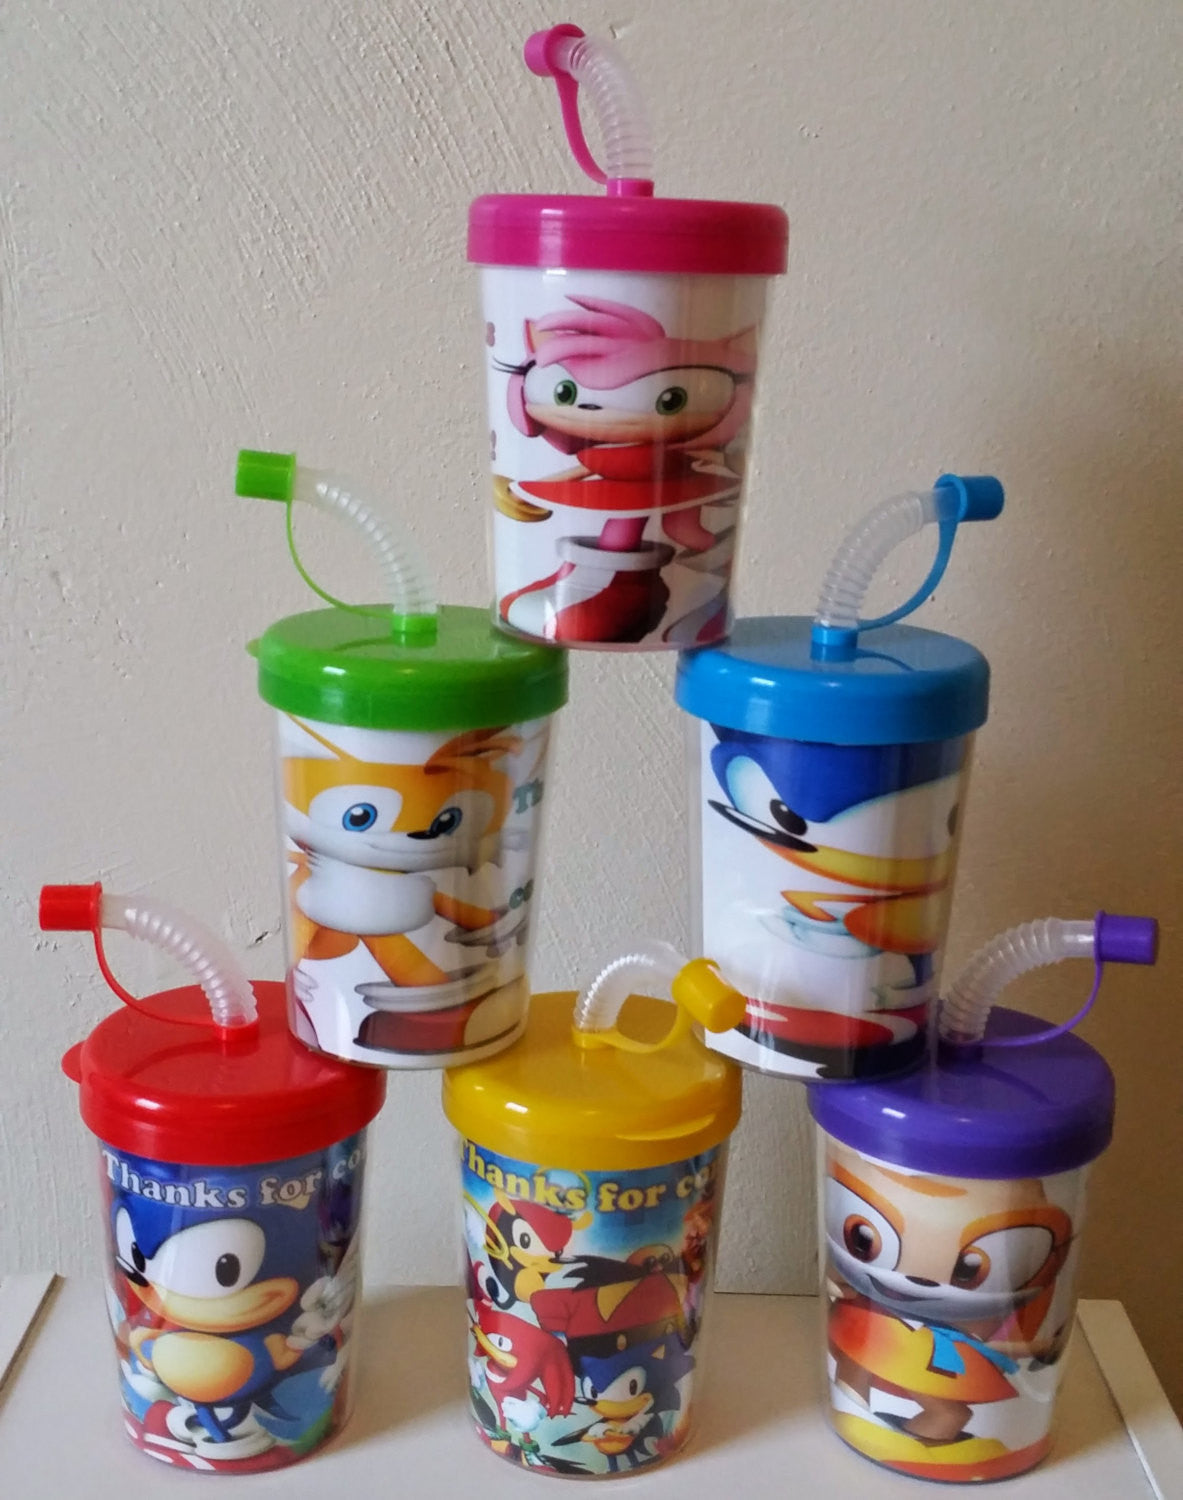 Sonic the hedgehog personalized with thanks for coming party favor sonic the hedgehog personalized with thanks for coming party favor cups do it yourself birthday treat cups set of 6 amy rose knuckles tails solutioingenieria Image collections